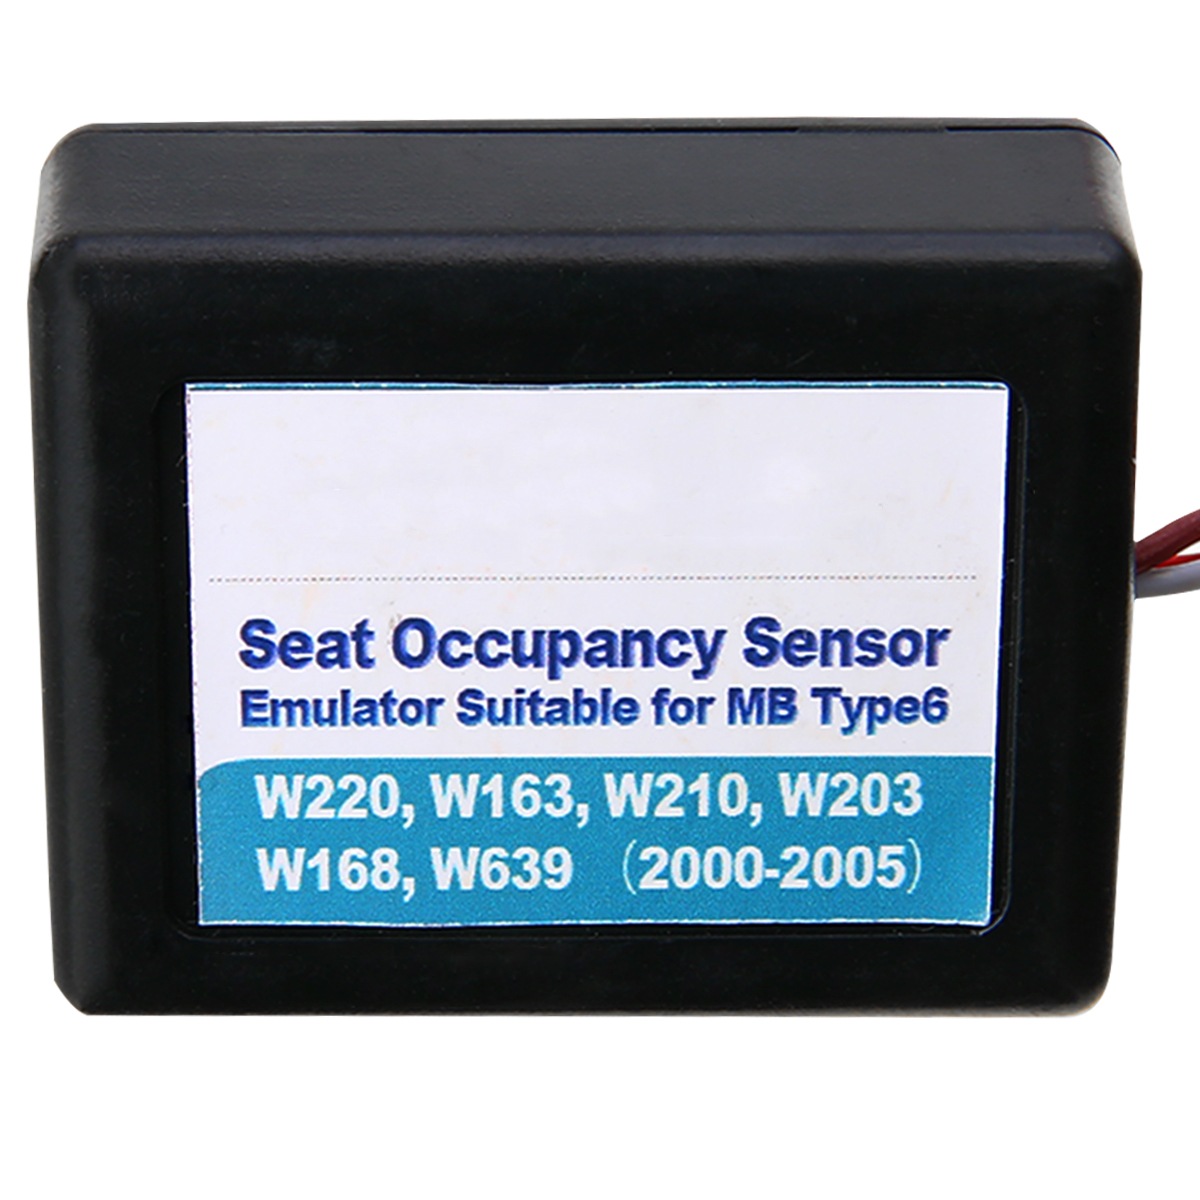 Image 3 - For Mercedes Benz 1pc Seat Occupancy Occupation Sensor SRS Emulator Universal Support Type6 W220 W163 W210-in Air Bag Scan Tools & Simulators from Automobiles & Motorcycles